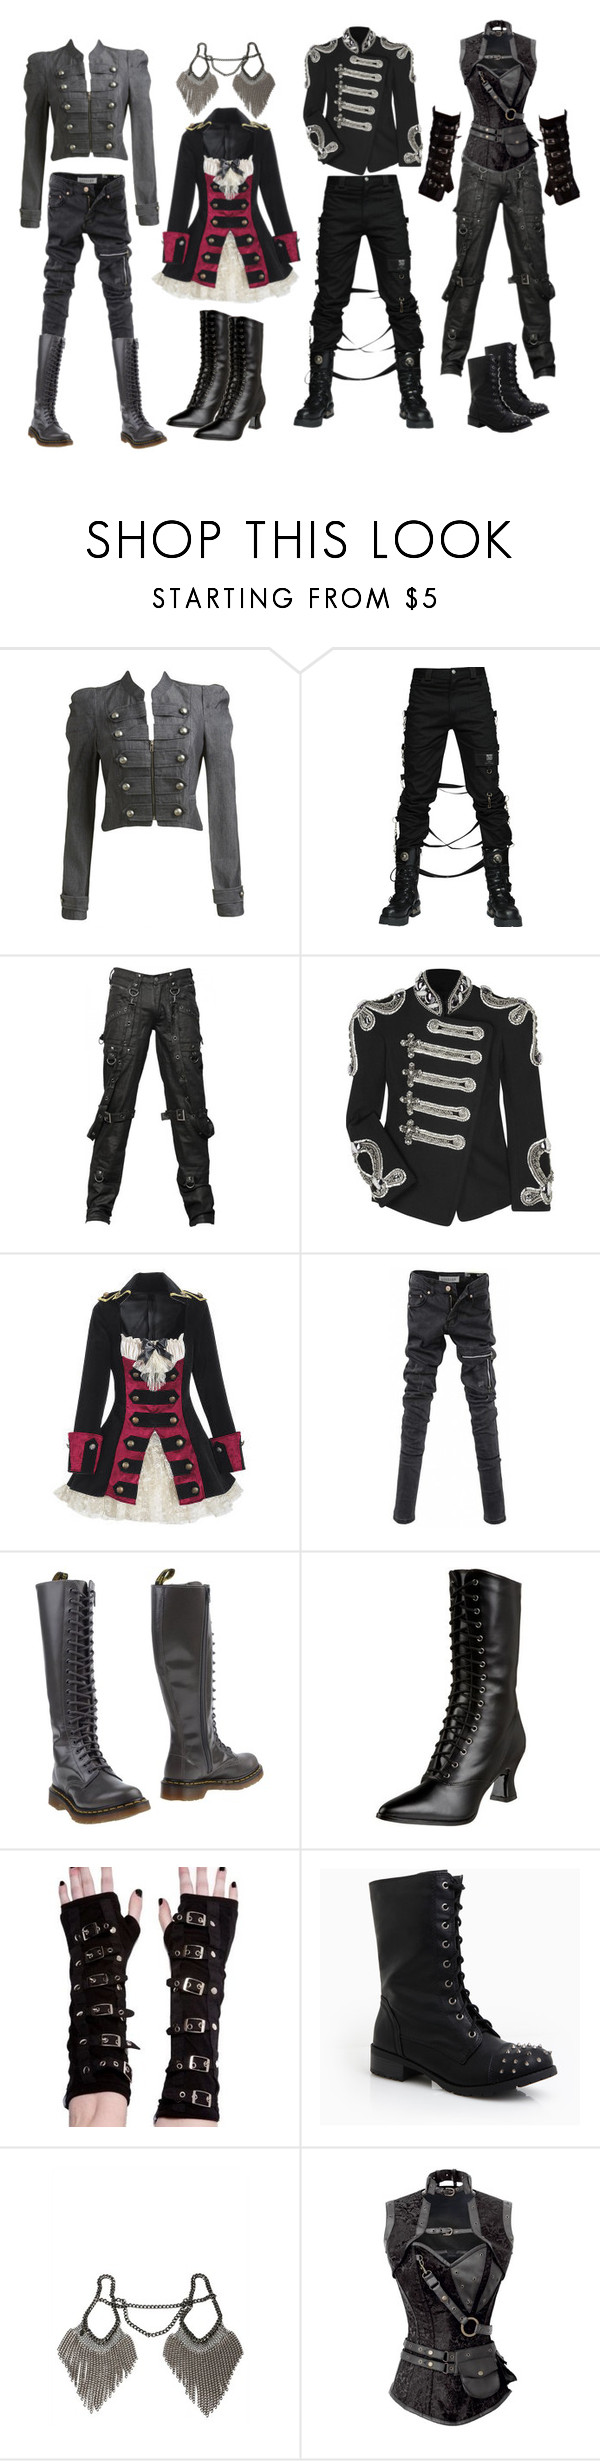 """""""Military Gothic"""" by queenstormrider ❤ liked on Polyvore featuring Arden B., Balmain, Eurø Style, Dr. Martens, Poizen Industries, DailyLook and Falconiere"""